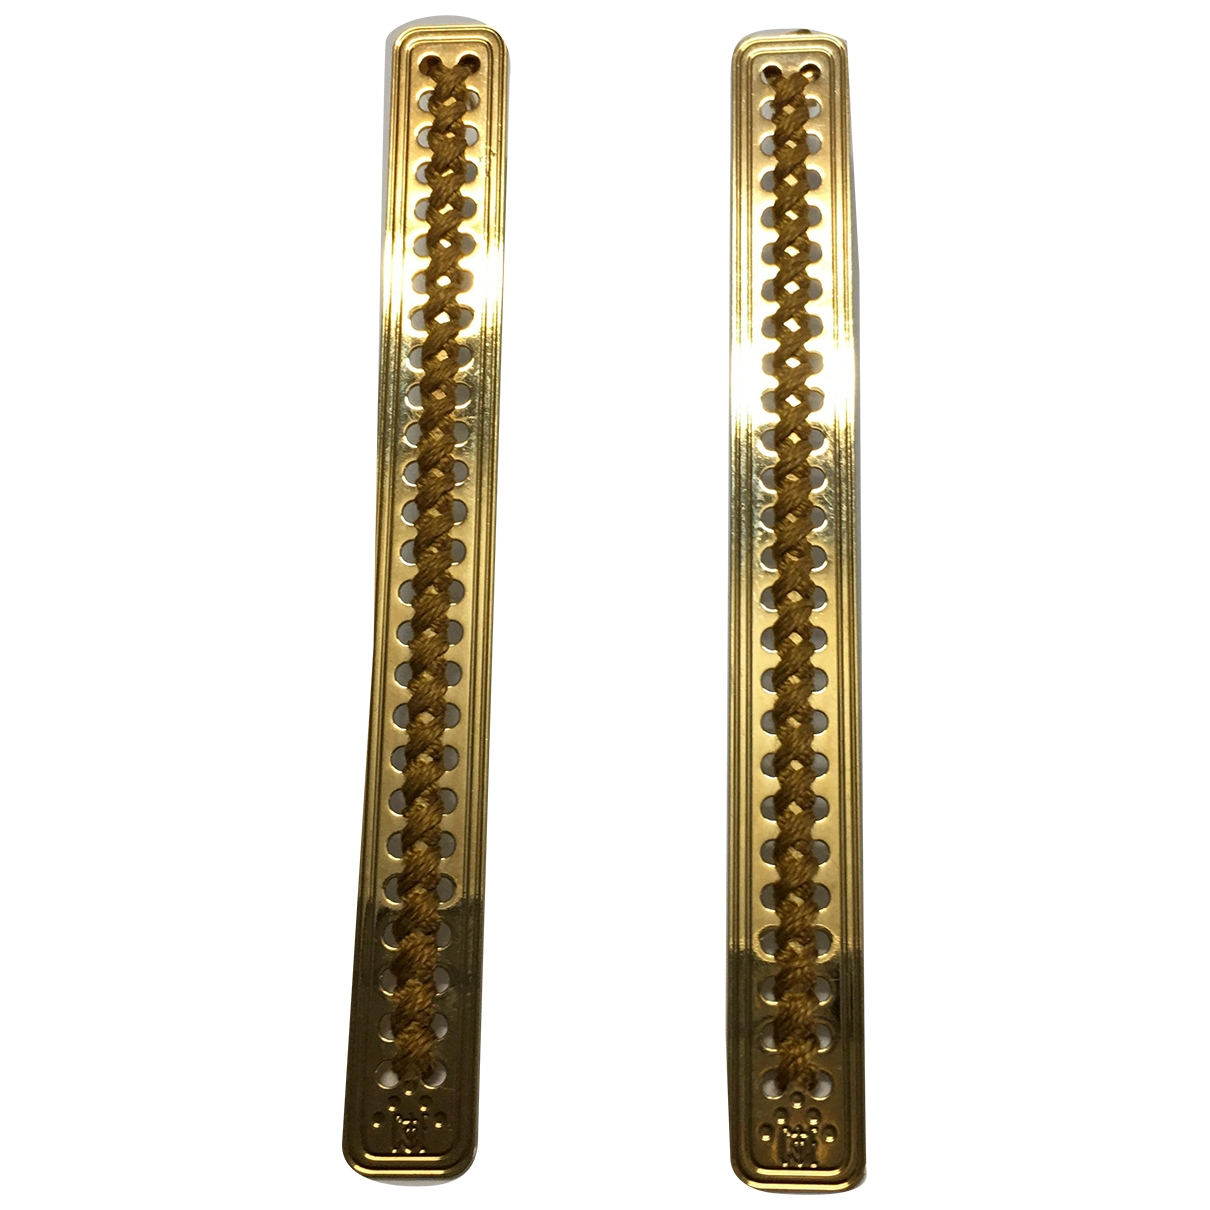 Camille Enrico \N Gold Gold plated Earrings for Women \N